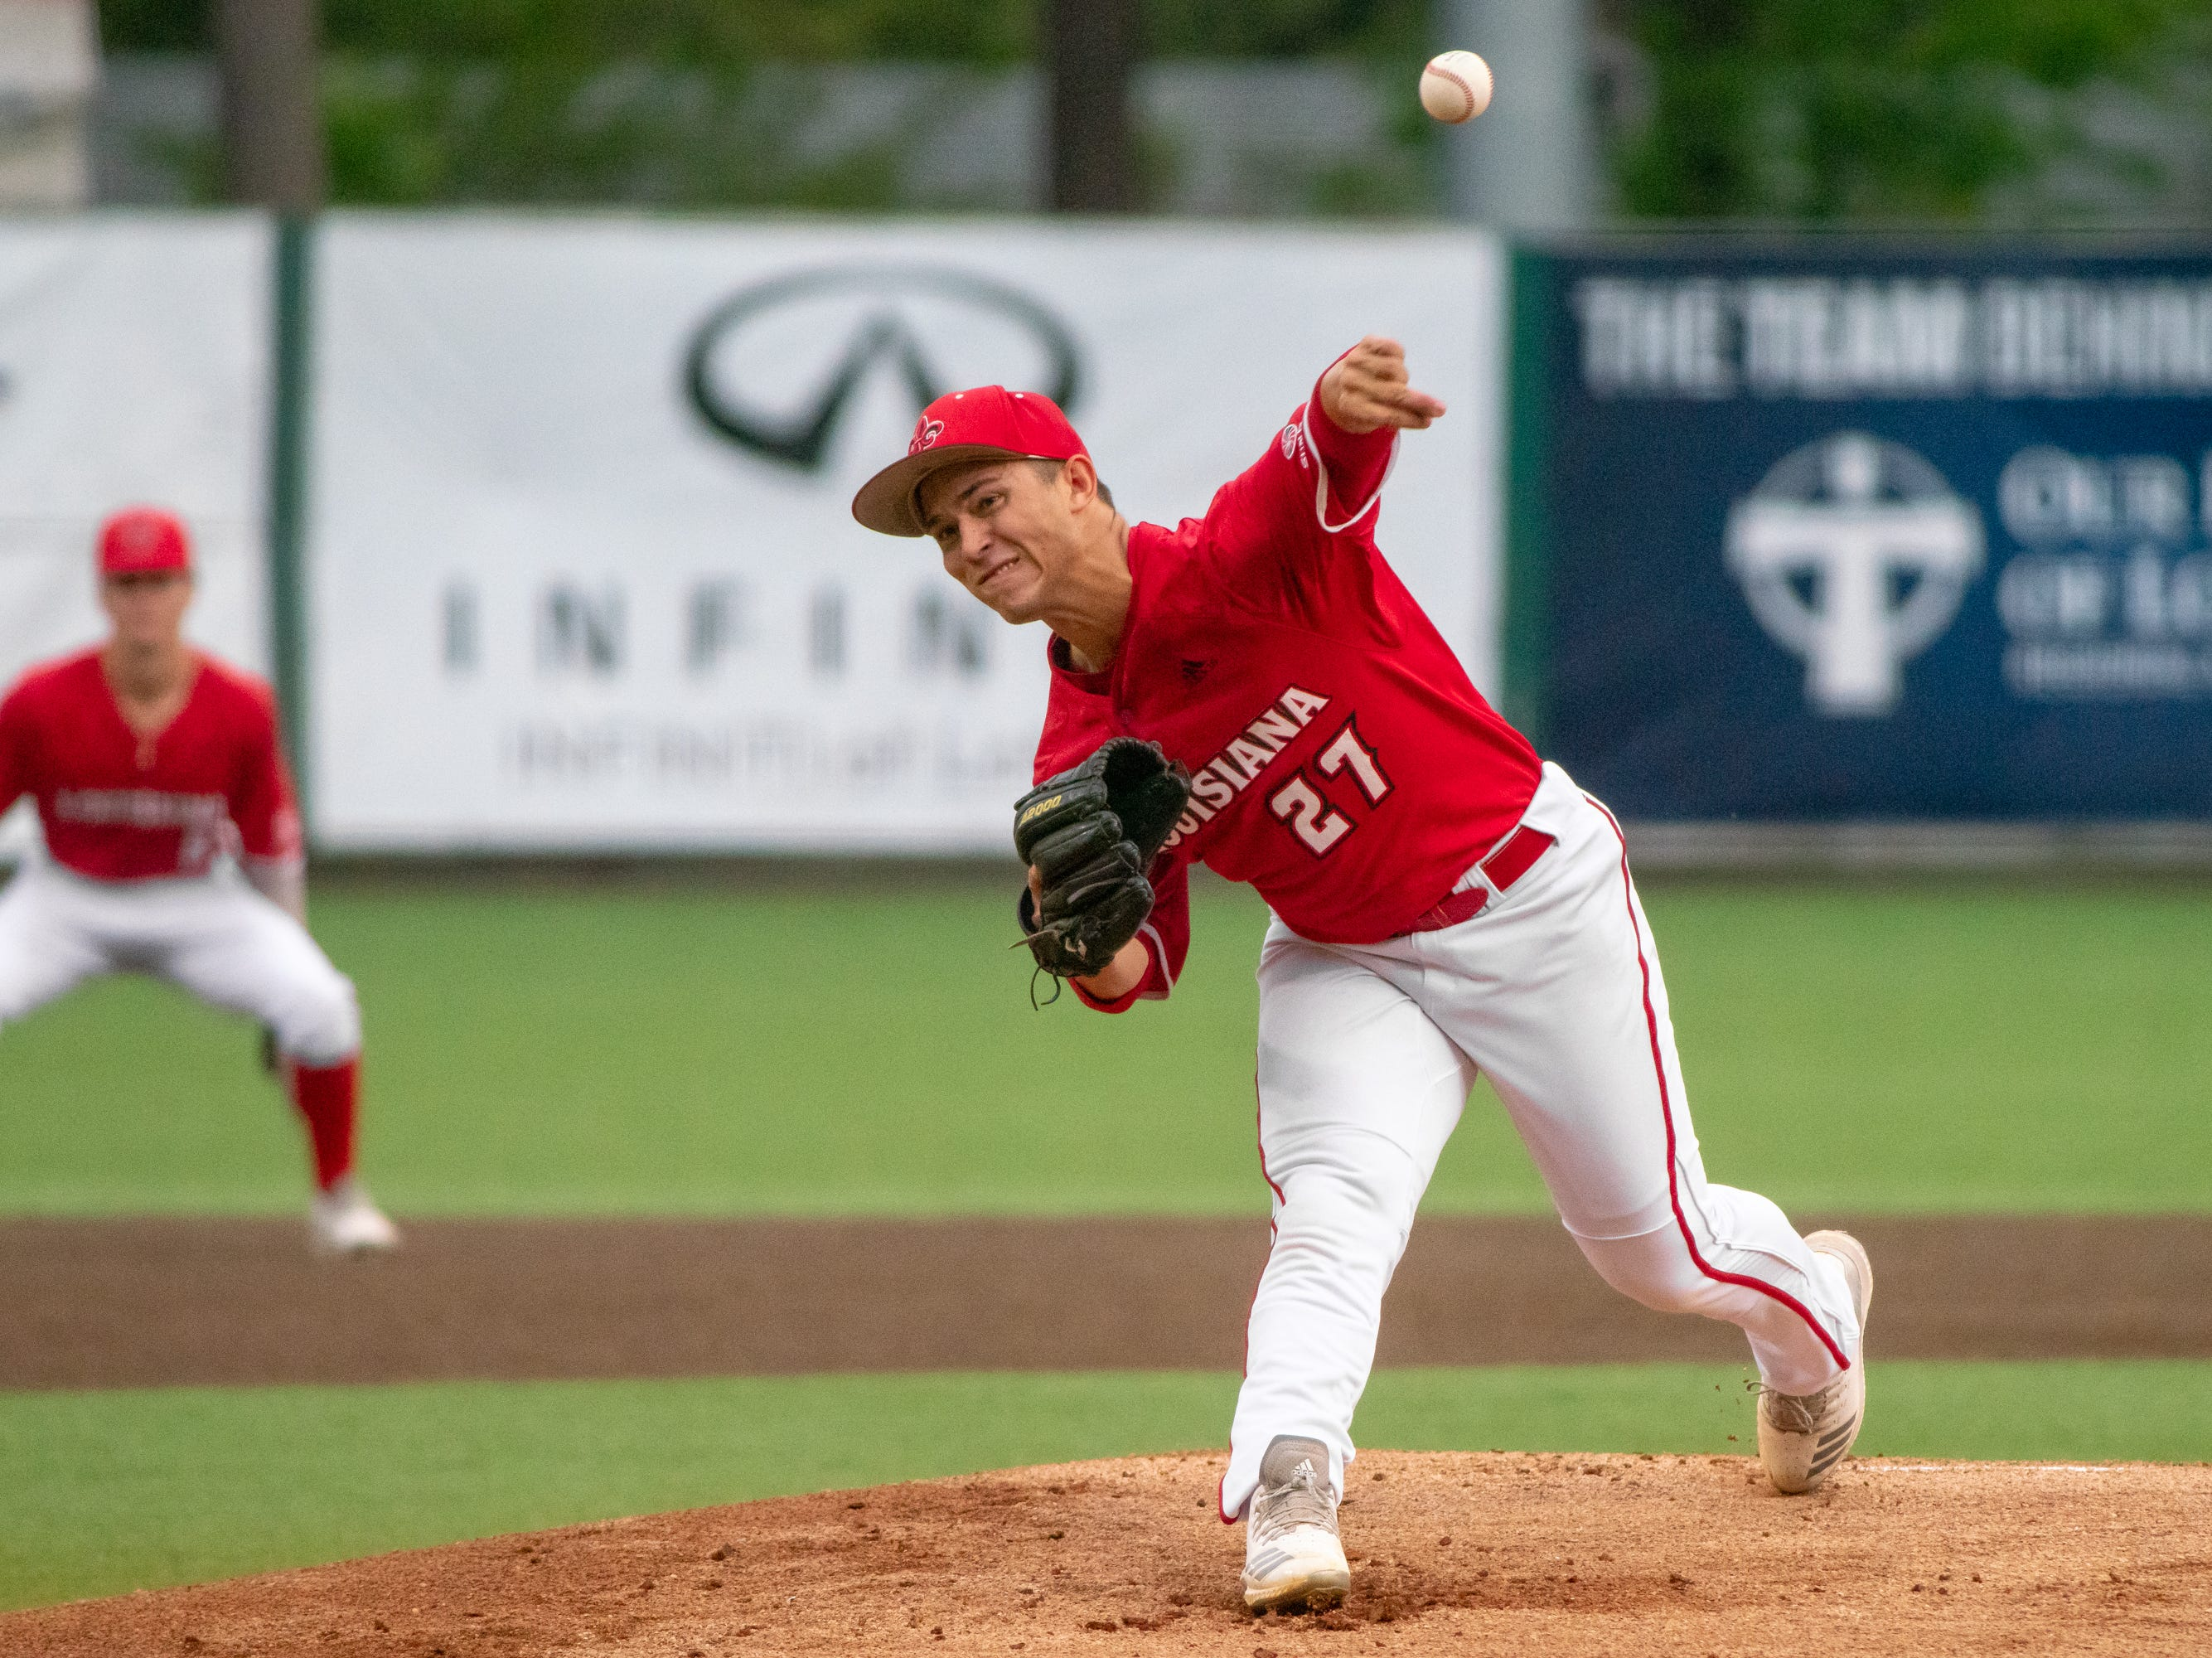 """UL's Austin Perrin pitches from the mound as the Ragin' Cajuns take on the South Alabama Jaguars at M.L. """"Tigue"""" Moore Field on Friday, April 4, 2019."""